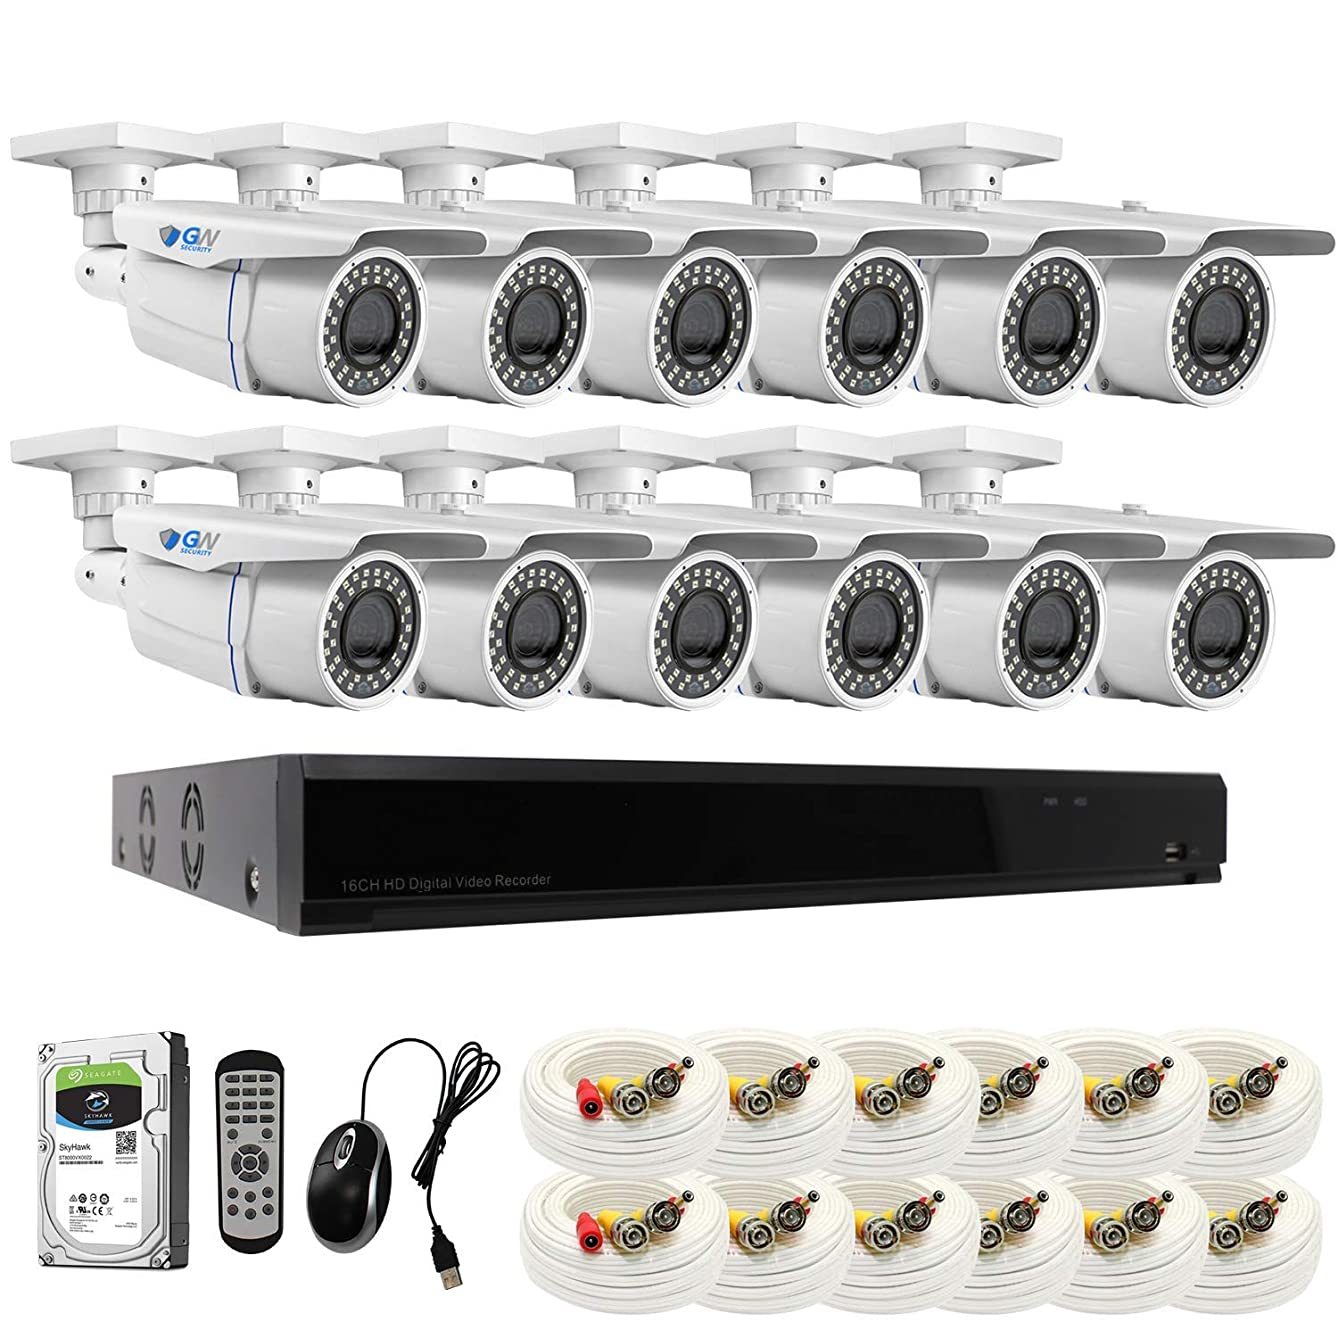 【2019 New】 GW 16CH 4K DVR H.265 8MP Complete Security System with (12) x 4K 2160P Waterproof 2.8-12mm Varifocal Zoom Bullet CCTV Security Cameras, 196ft IR Night Vision, 8TB Hard Drive